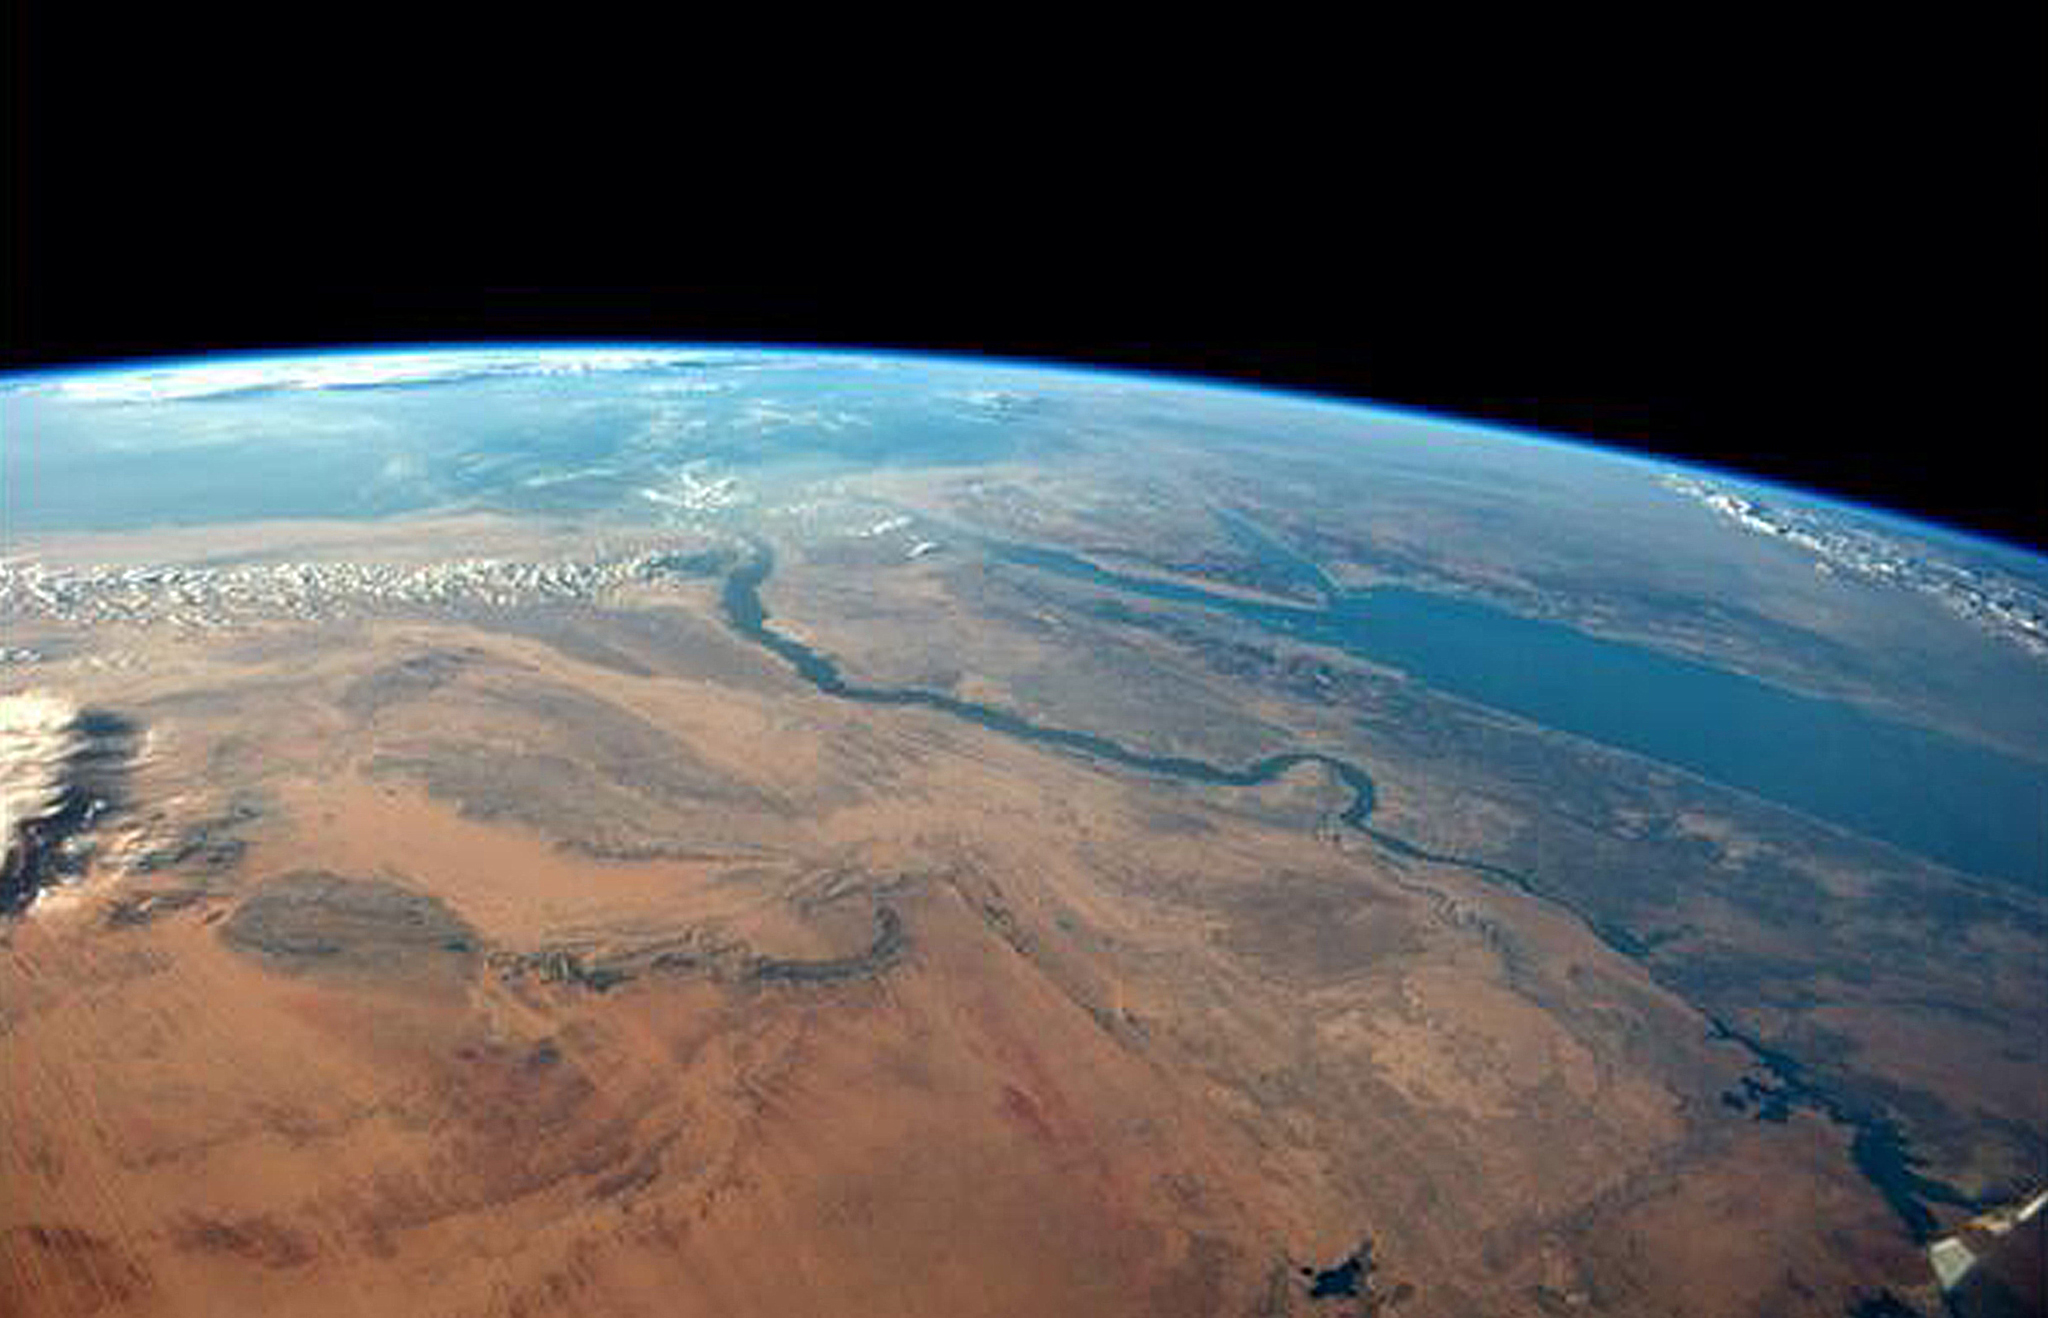 Egyptian desert meets the Red Sea on a cloudless afternoon in this photo tweeted by first-time astronaut Reid Wiseman...The Egyptian desert meets the Red Sea on a cloudless afternoon in this photo tweeted by first-time astronaut Reid Wiseman on June 8, 2014. Wiseman is one of six men living aboard the International Space Station. Wiseman is sharing his observations and pictures with a growing following on Twitter.  REUTERS/Reid Wiseman/NASA/Handout via Reuters  (OUTER SPACE - Tags: ENVIRONMENT SCIENCE TECHNOLOGY TPX IMAGES OF THE DAY) ATTENTION EDITORS - FOR EDITORIAL USE ONLY. NOT FOR SALE FOR MARKETING OR ADVERTISING CAMPAIGNS. THIS PICTURE WAS PROVIDED BY A THIRD PARTY. REUTERS IS UNABLE TO INDEPENDENTLY VERIFY THE AUTHENTICITY, CONTENT, LOCATION OR DATE OF THIS IMAGE. THIS PICTURE IS DISTRIBUTED EXACTLY AS RECEIVED BY REUTERS, AS A SERVICE TO CLIENTS